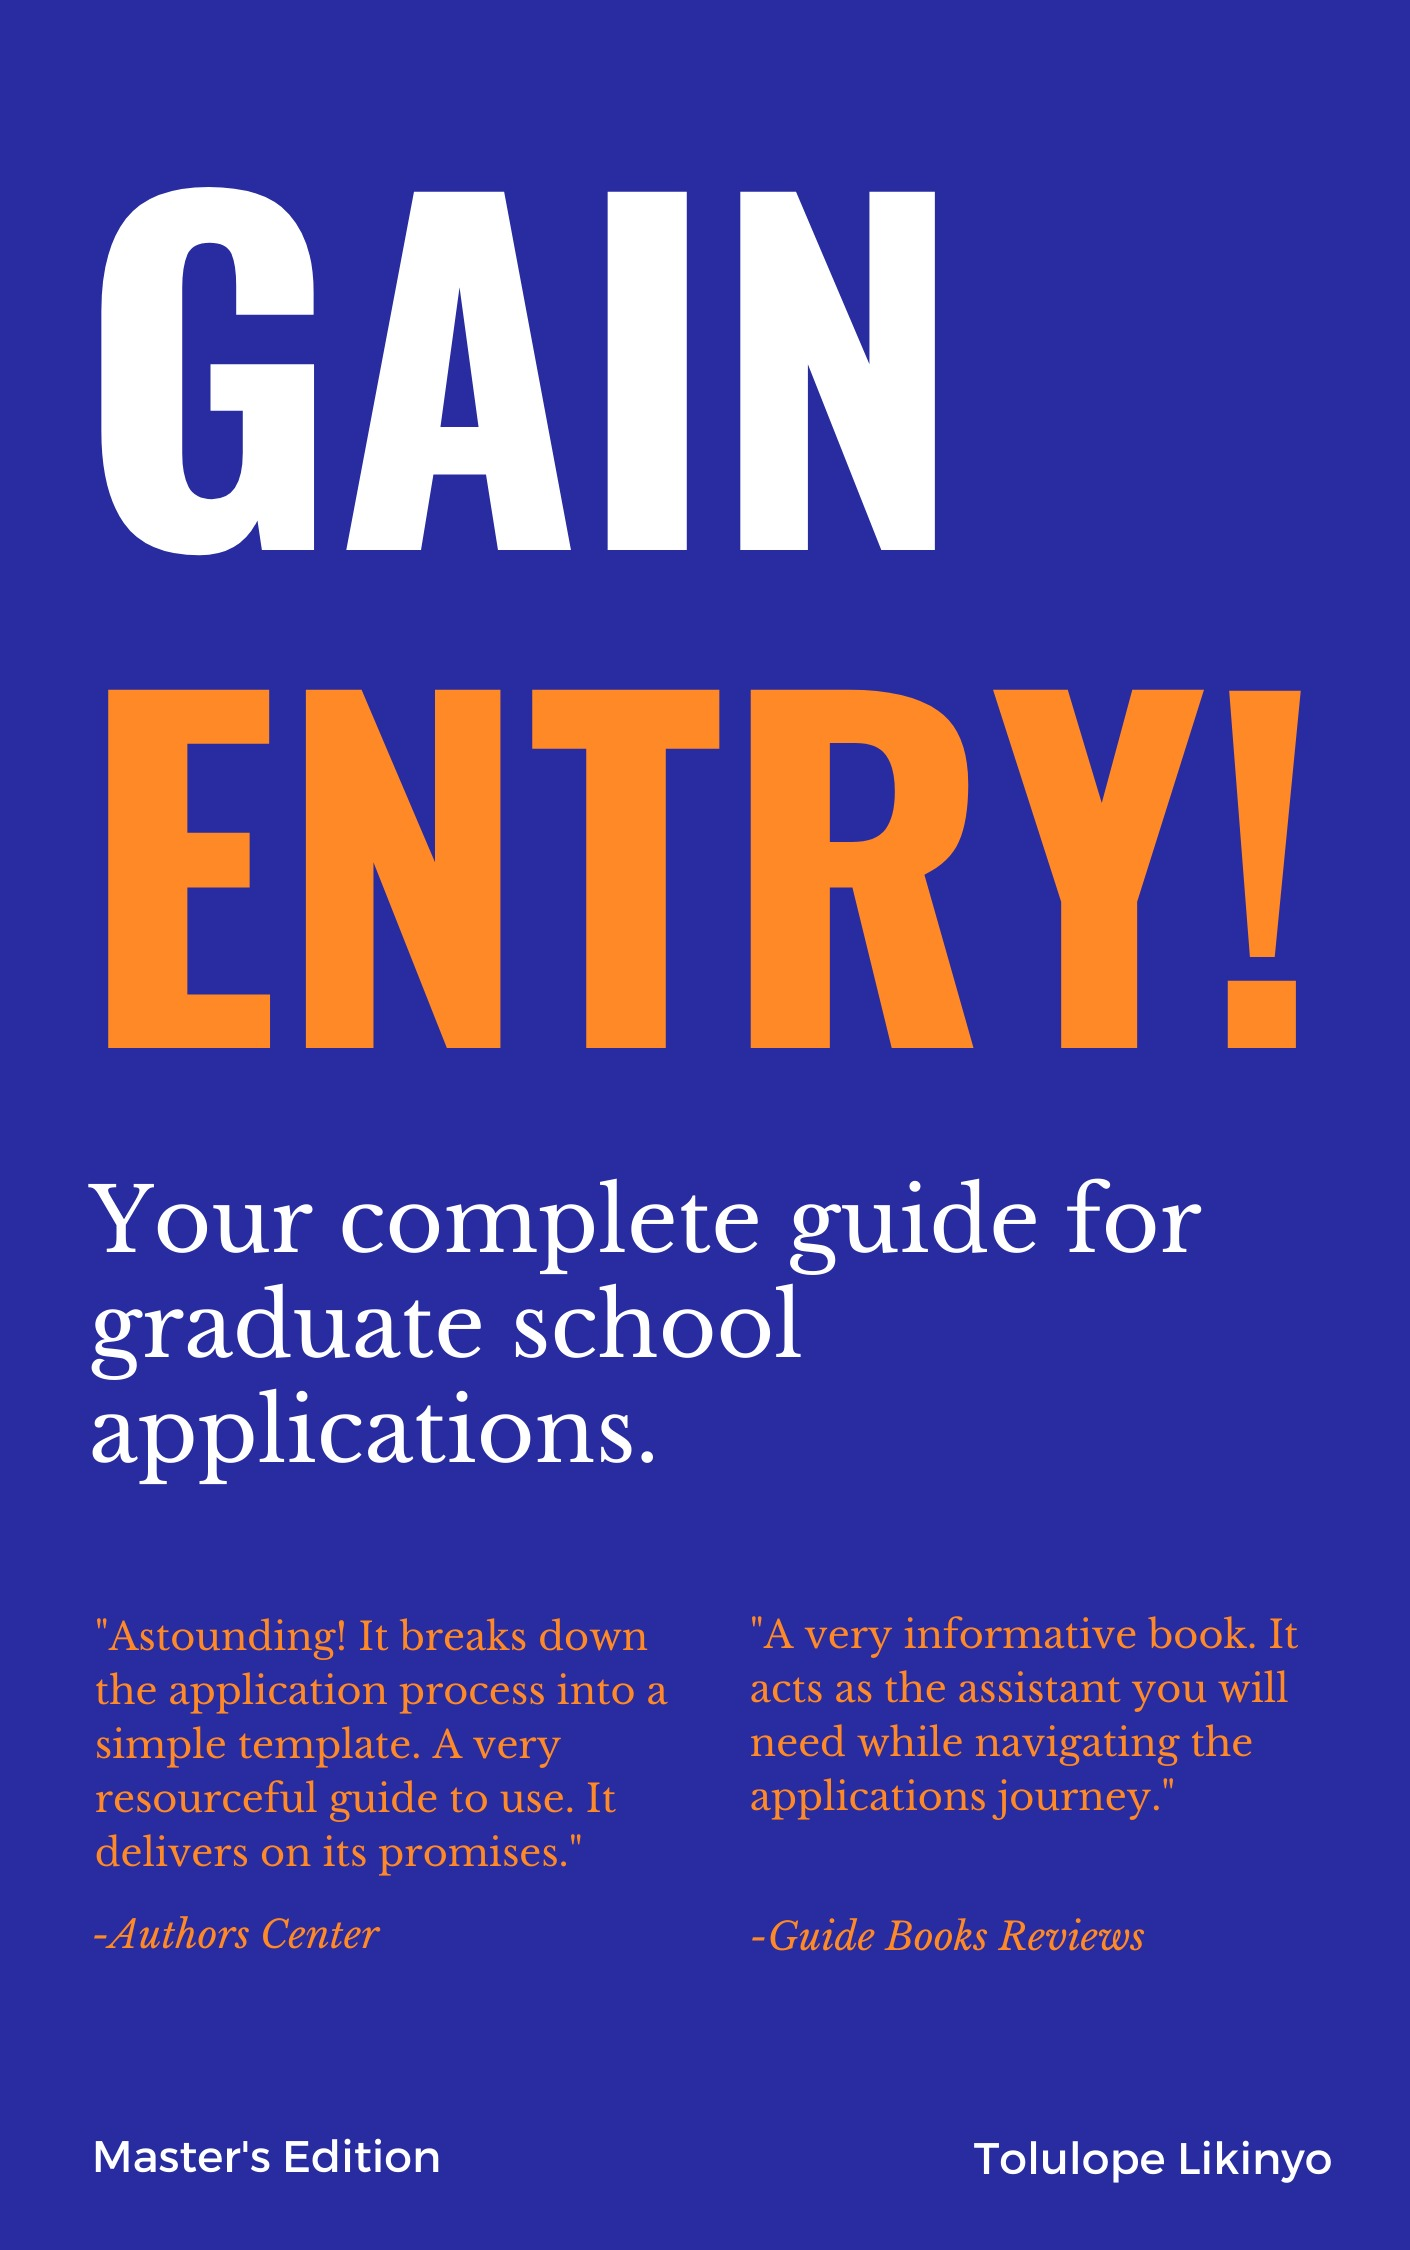 Gain Entry - Your Complete Guide for Graduate School Applications